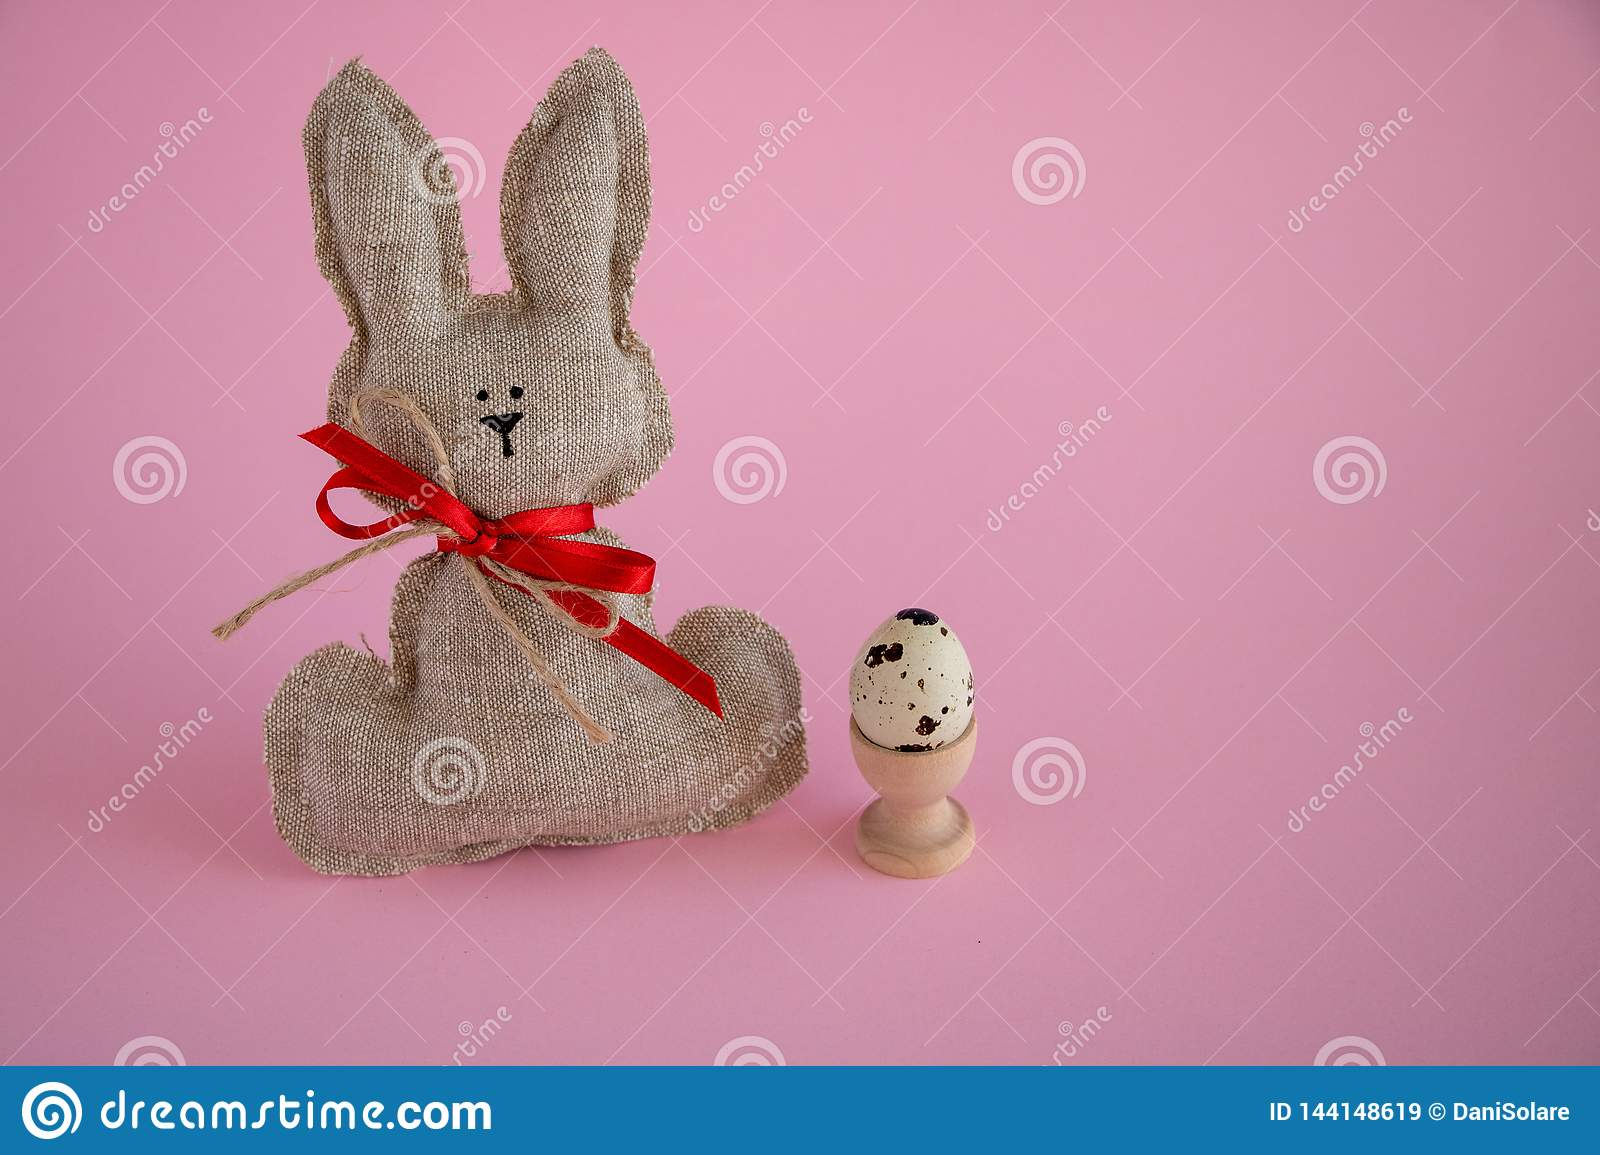 Easter decorations on a pink background with a hand made Easter bunny